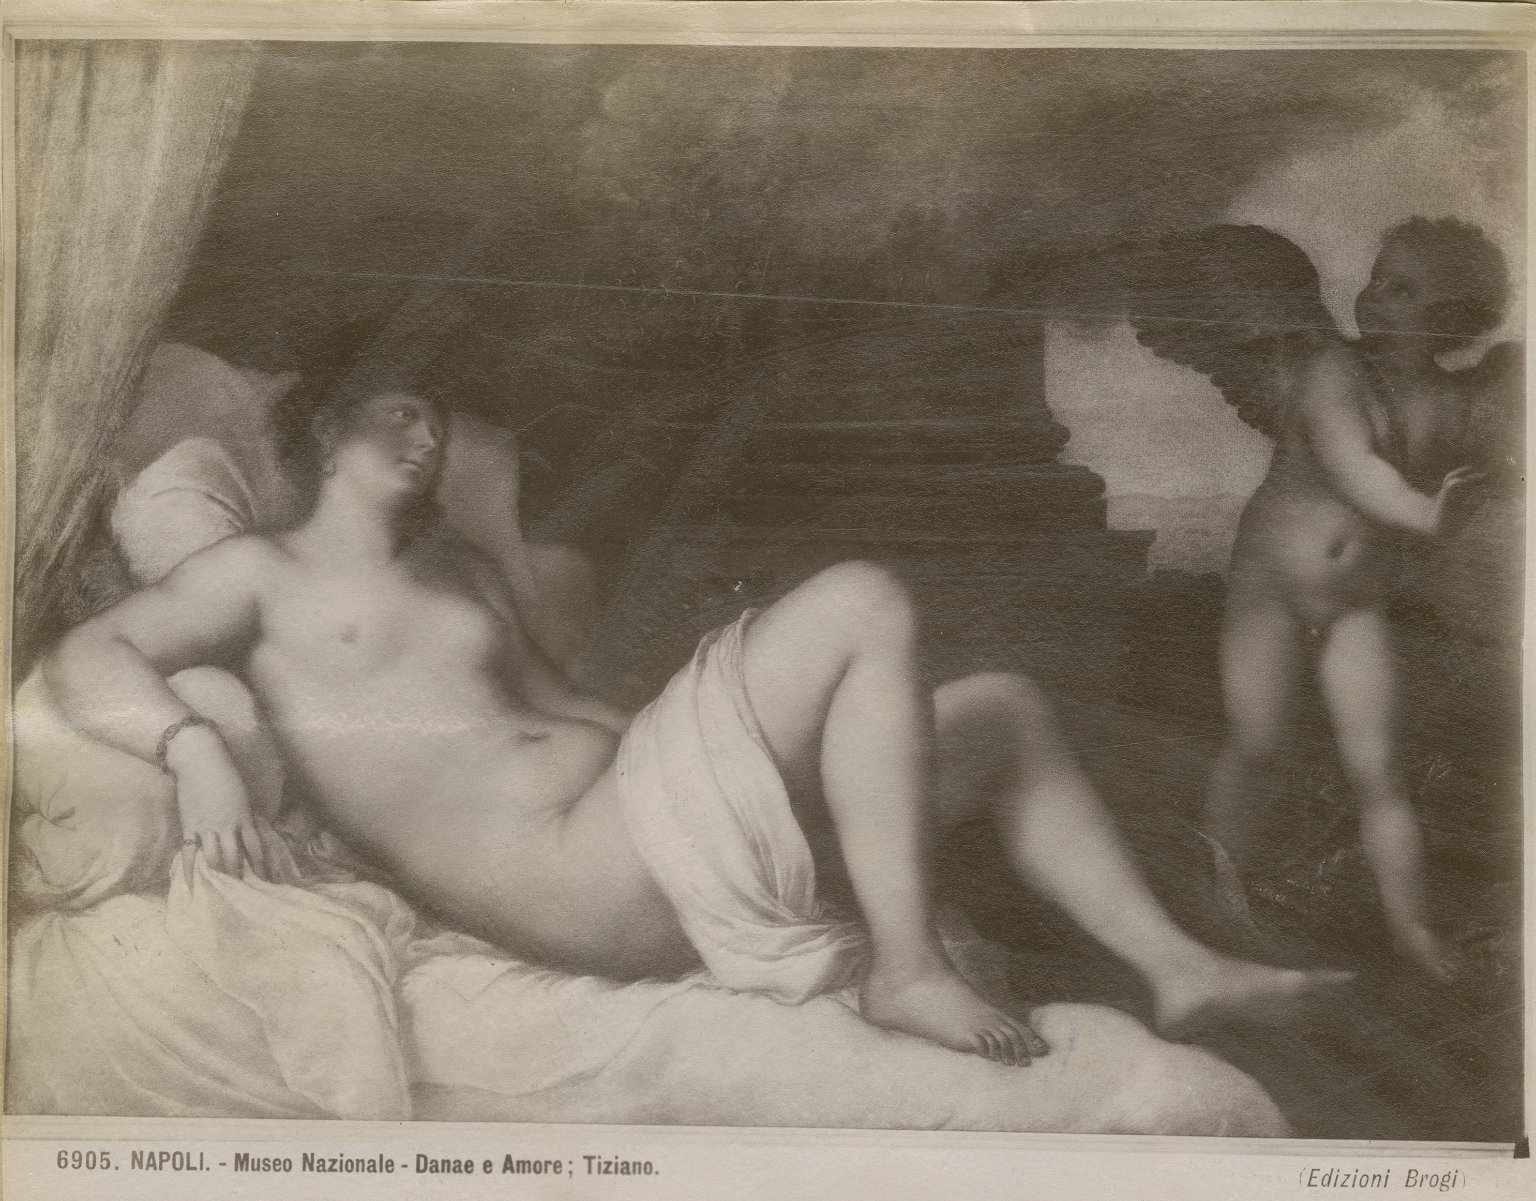 Danaë with Eros, by Titian